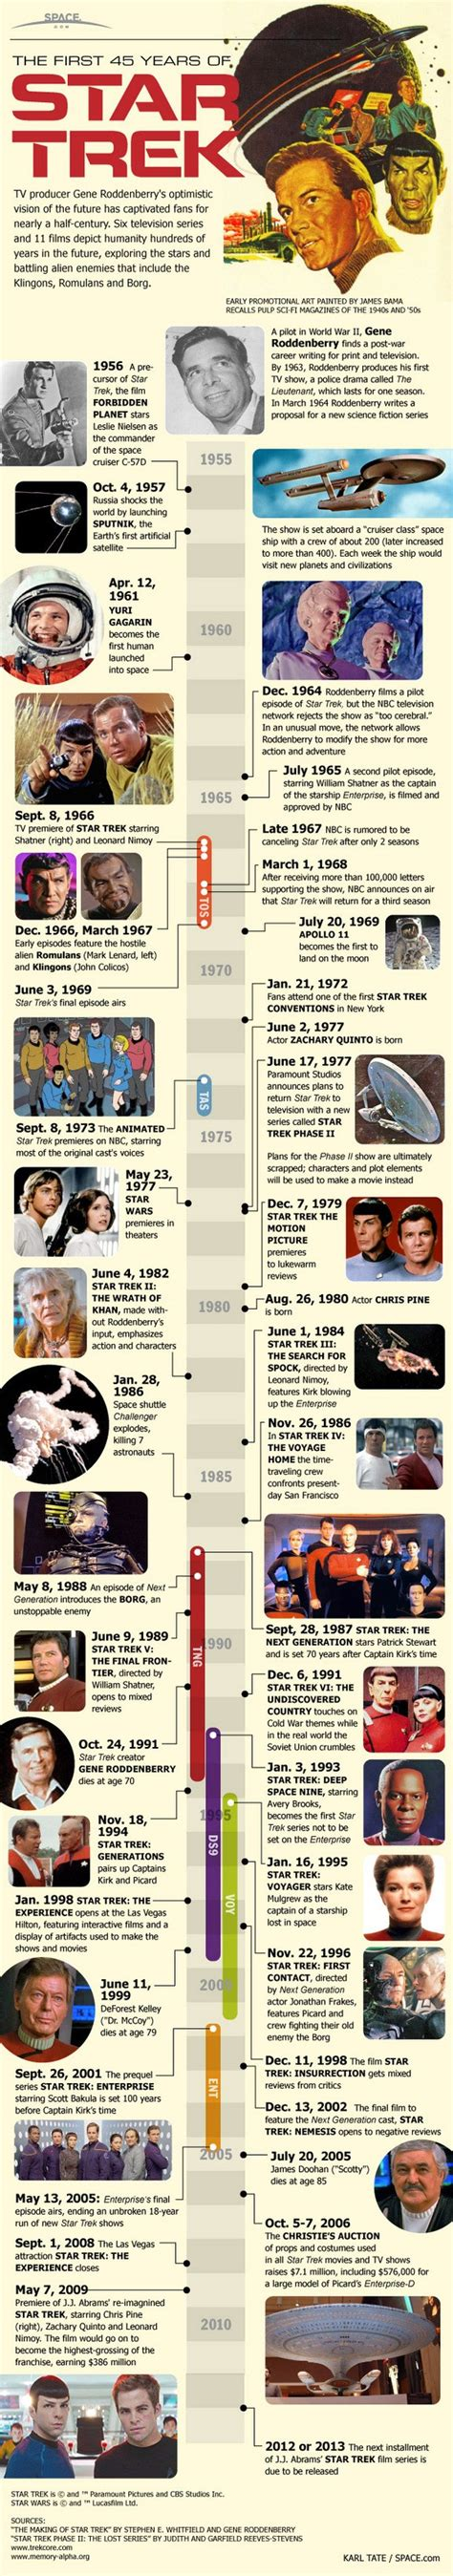 Mba At 45 Years by The 45 Years Of Trek Infographic Filmbook